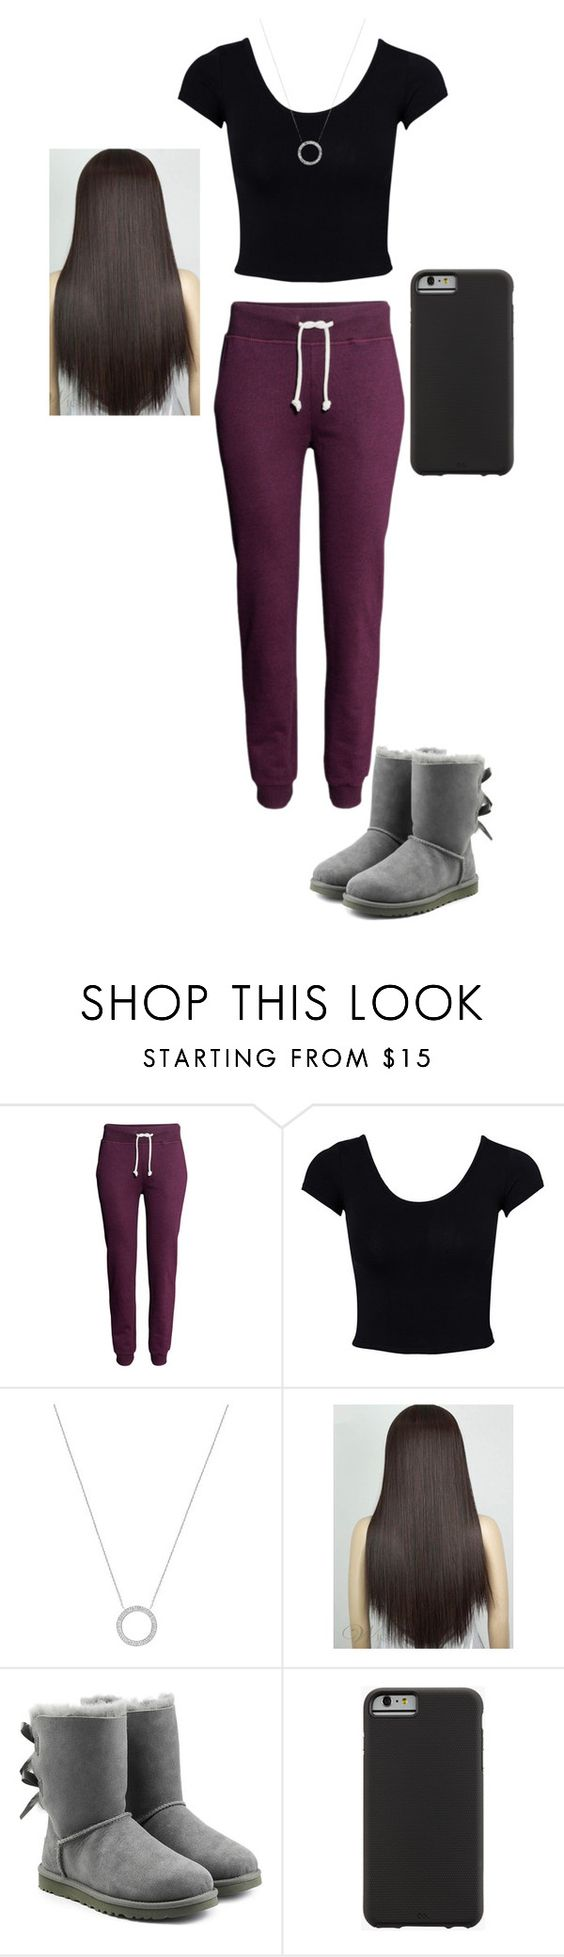 """just an outfit"" by mell-rosee ❤ liked on Polyvore featuring H&M, Estradeur, Michael Kors, UGG Australia and Case-Mate"